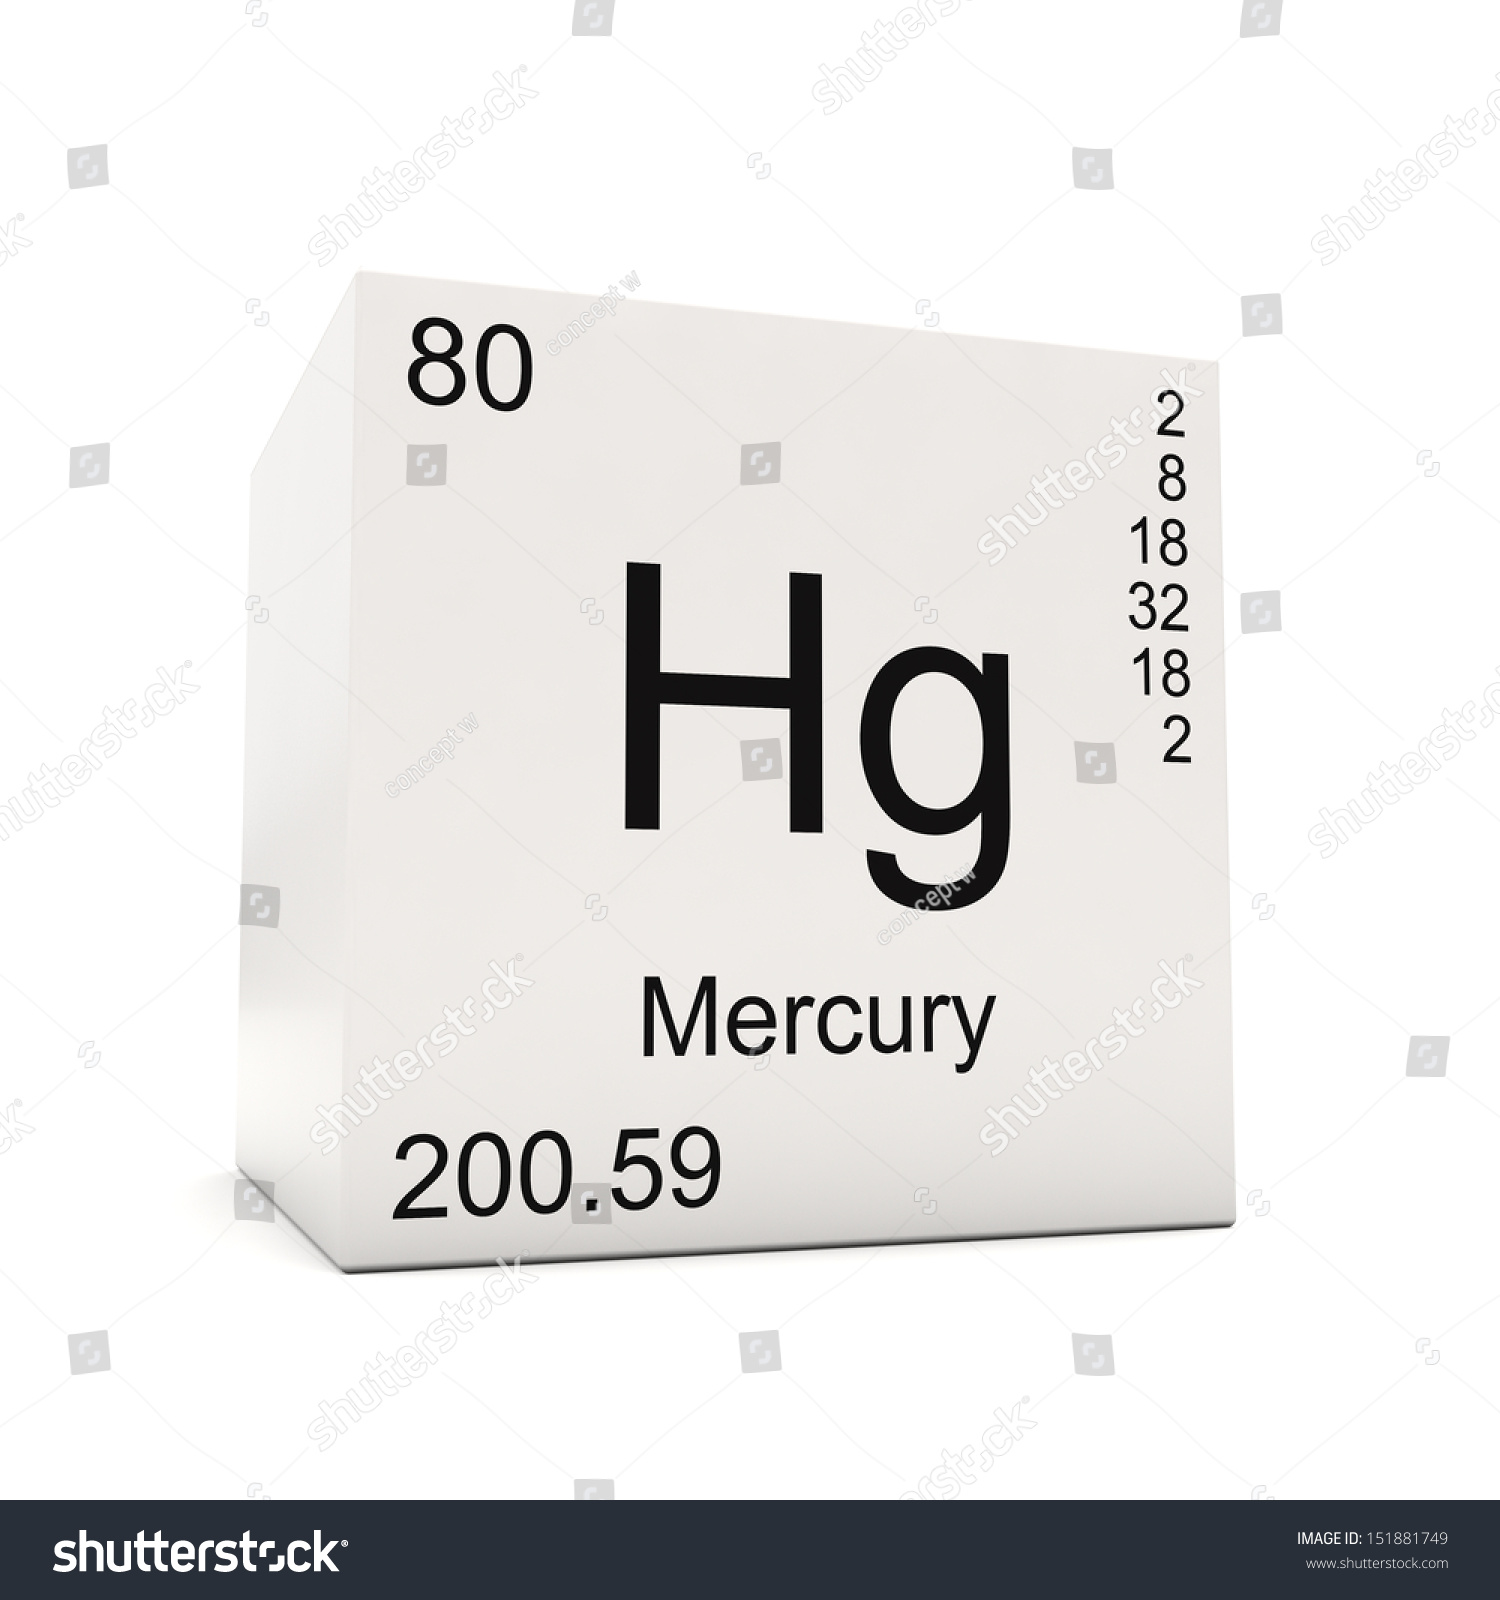 What Is The Abbreviation On Periodic Table For Element Mercury